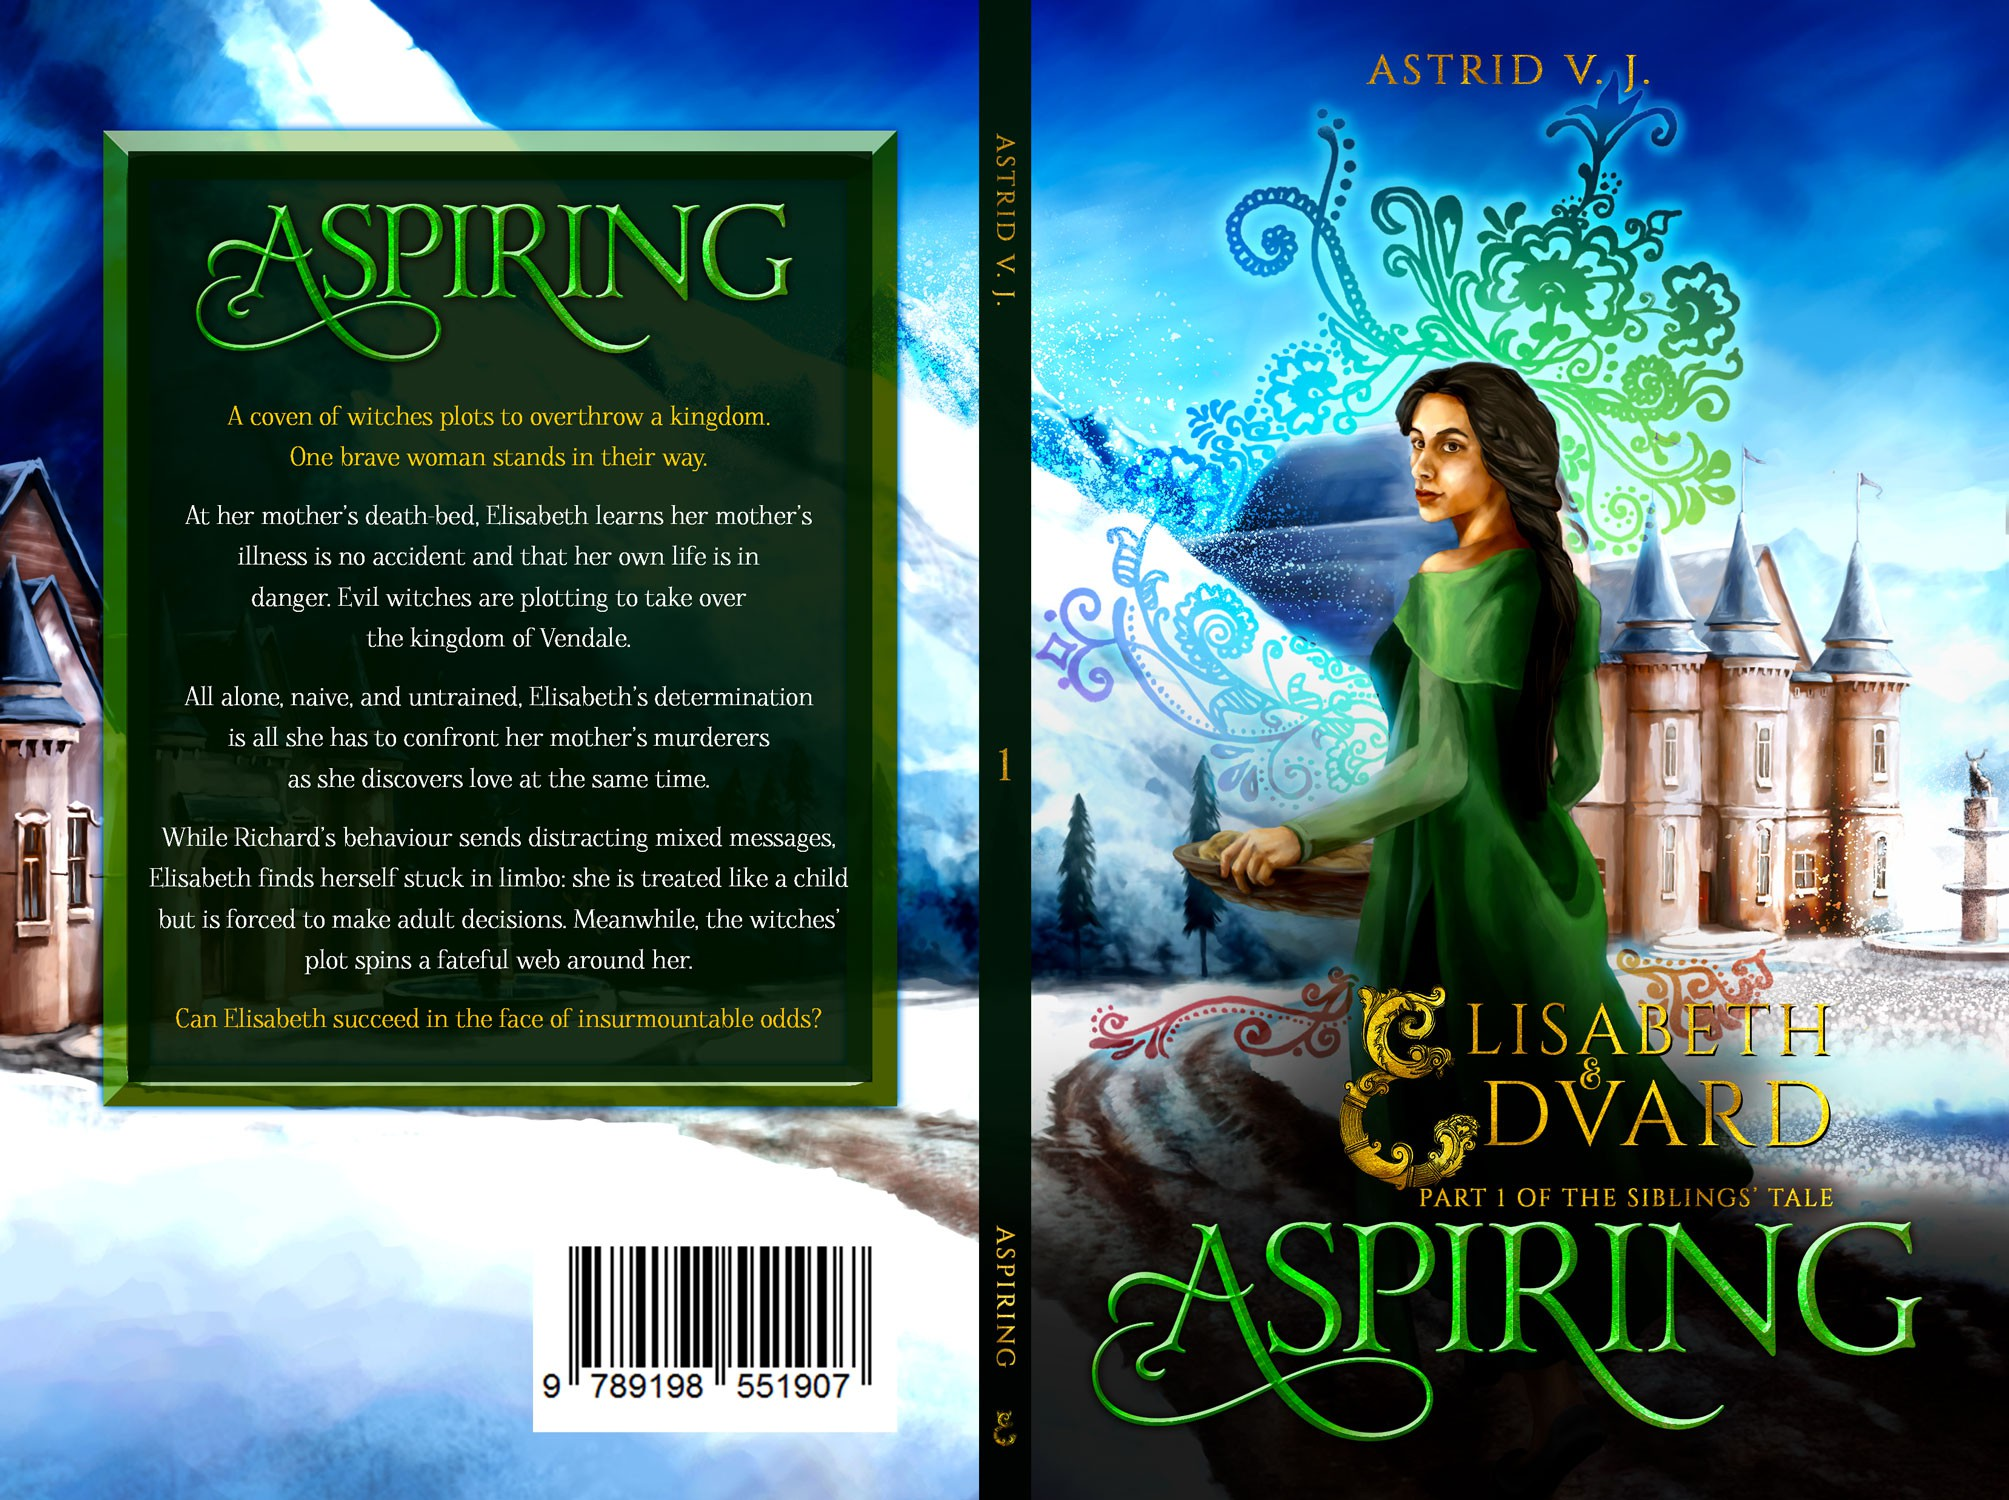 Elisabeth and Edvard - Aspiring Part One of the Siblings' Tale